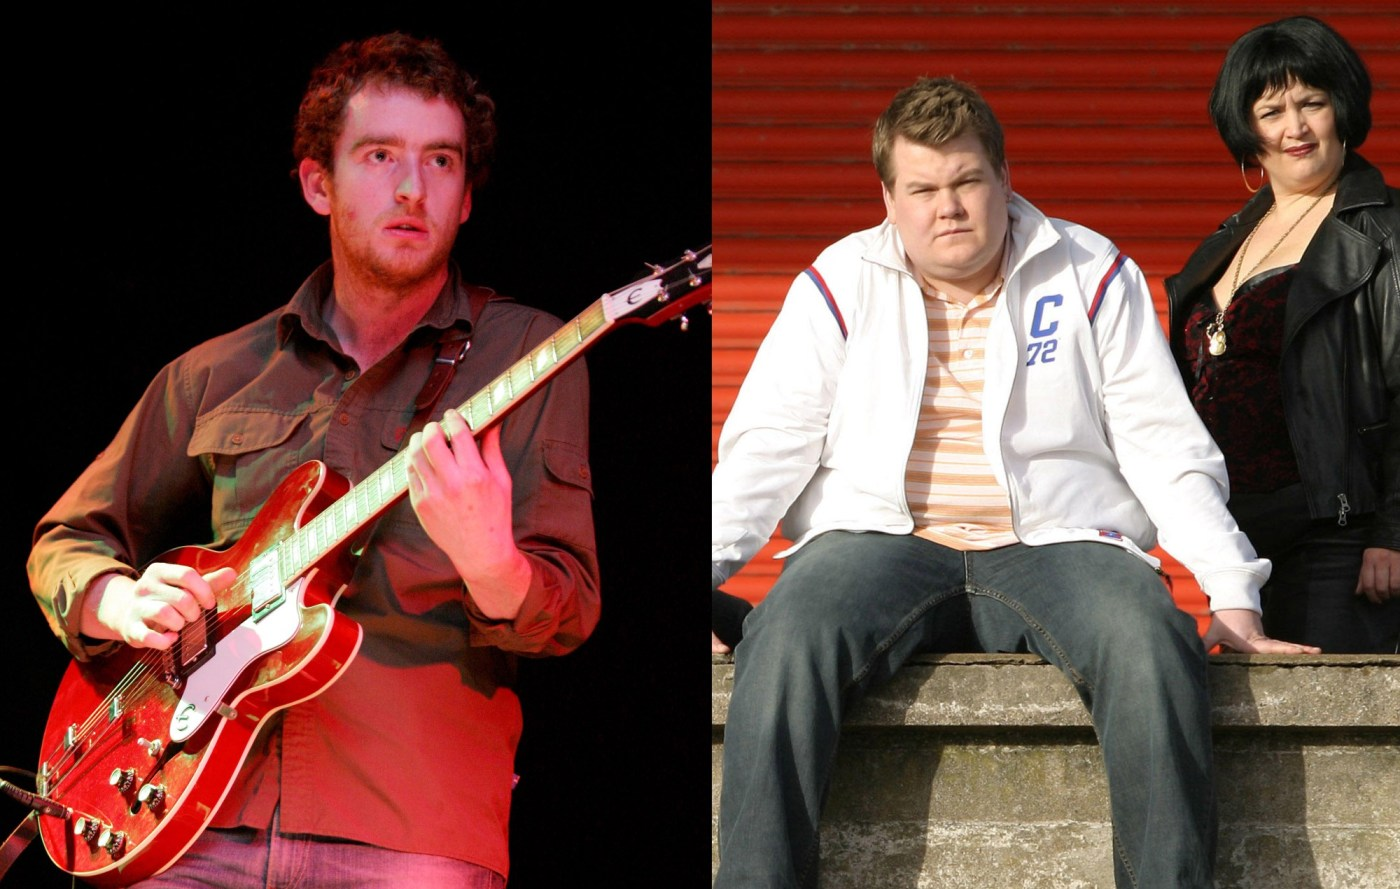 Stephen Fretwell and Gavin and Stacey